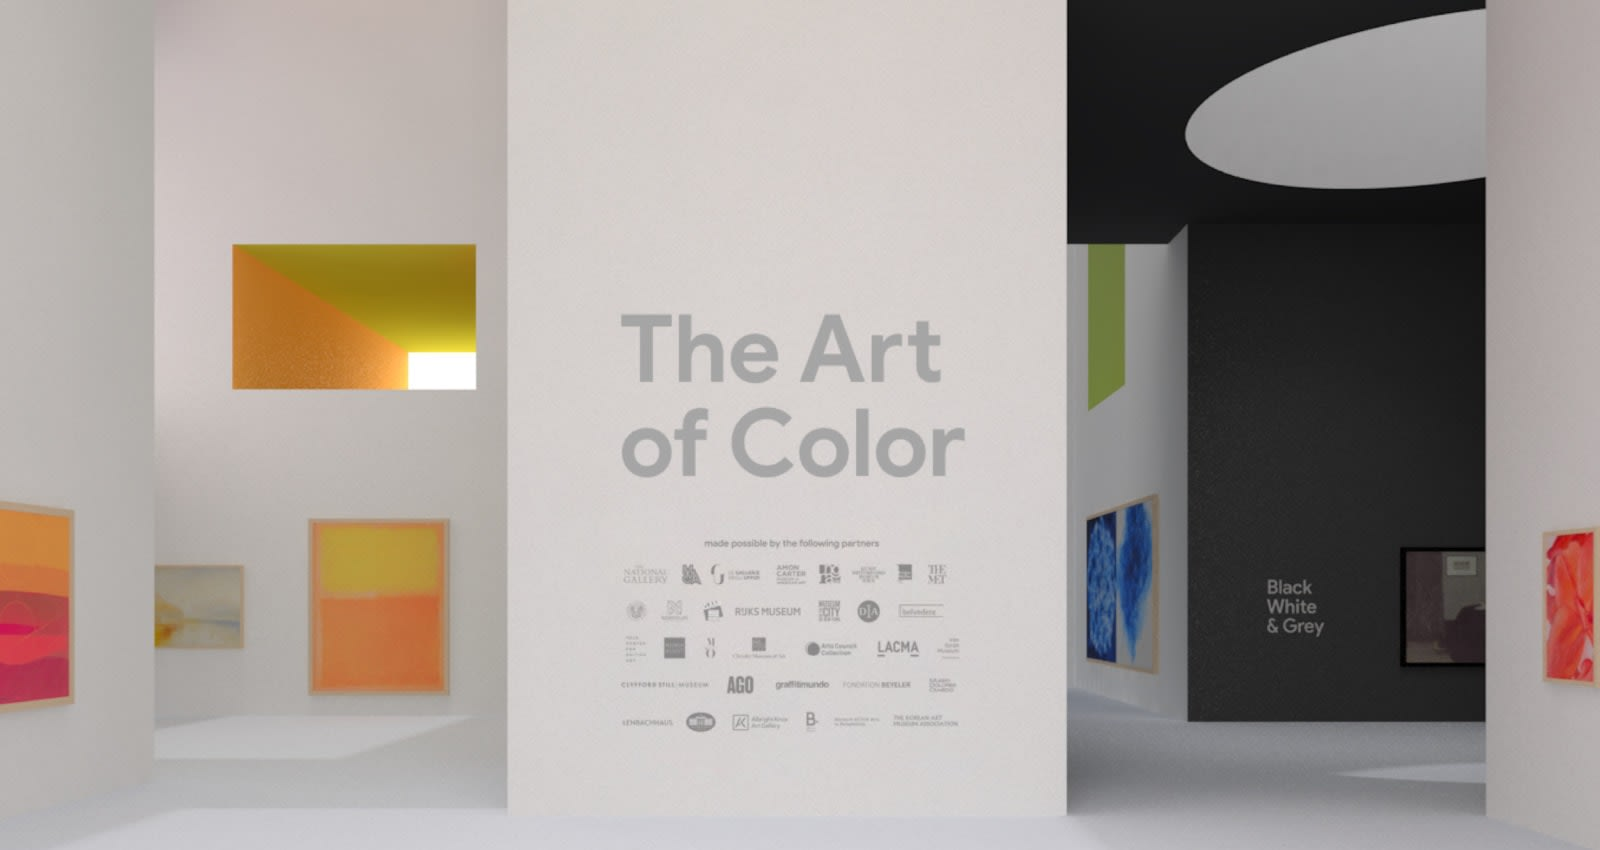 Google Arts & Culture made an AR gallery that celebrates color